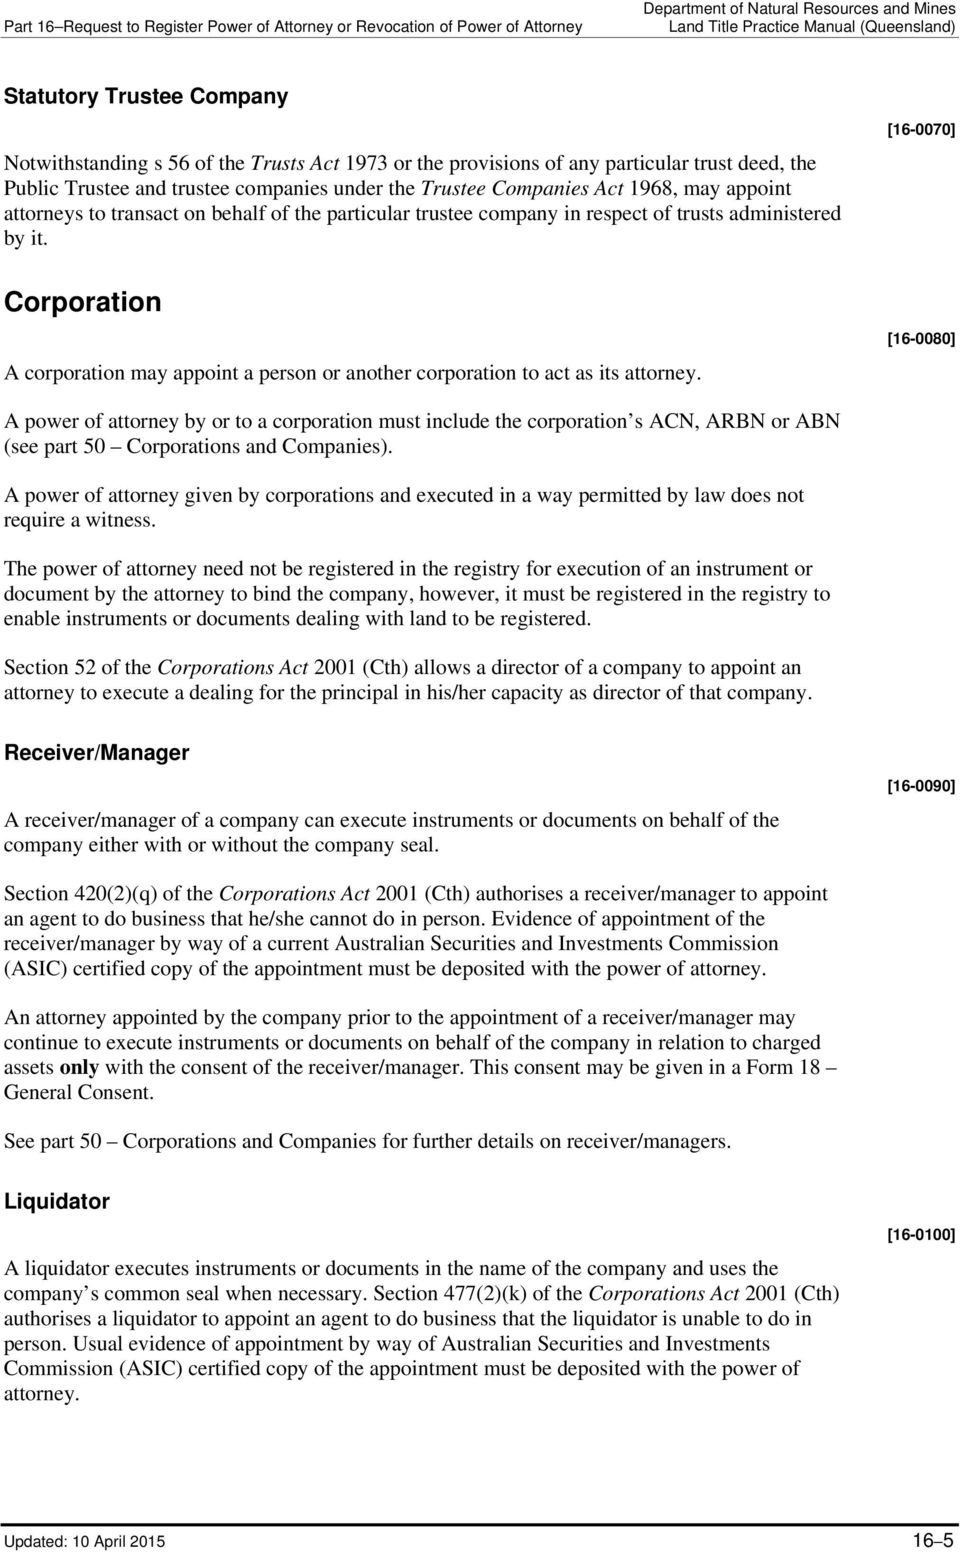 Corporation A corporation may appoint a person or another corporation to act as its attorney.